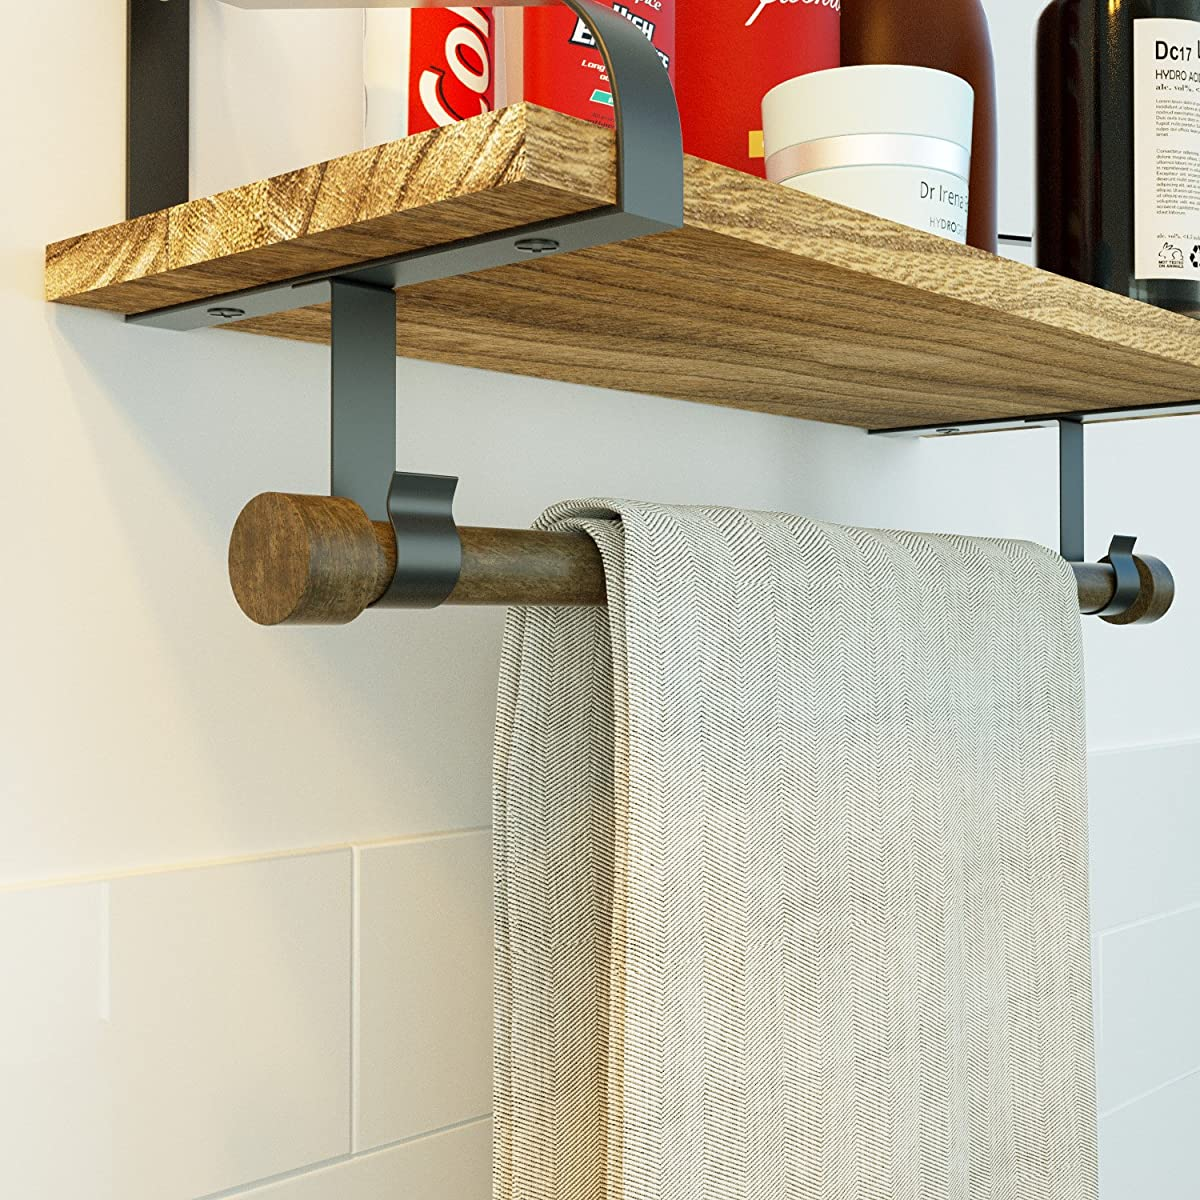 Love-KANKEI Wall Shelf for Storage - Rustic Wood Kitchen Floating Shelves with Towel Bar and 8 Removable Hooks for Organize Cooking Utensils or Mugs Torched Finish